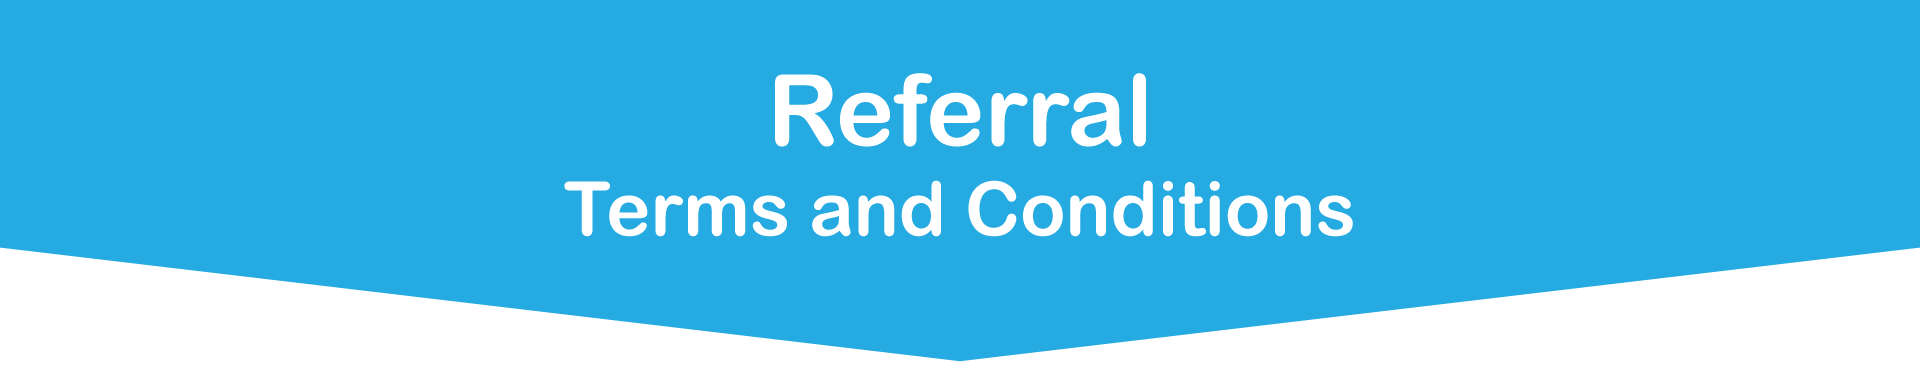 Referral-Page-T&Cs-header.png